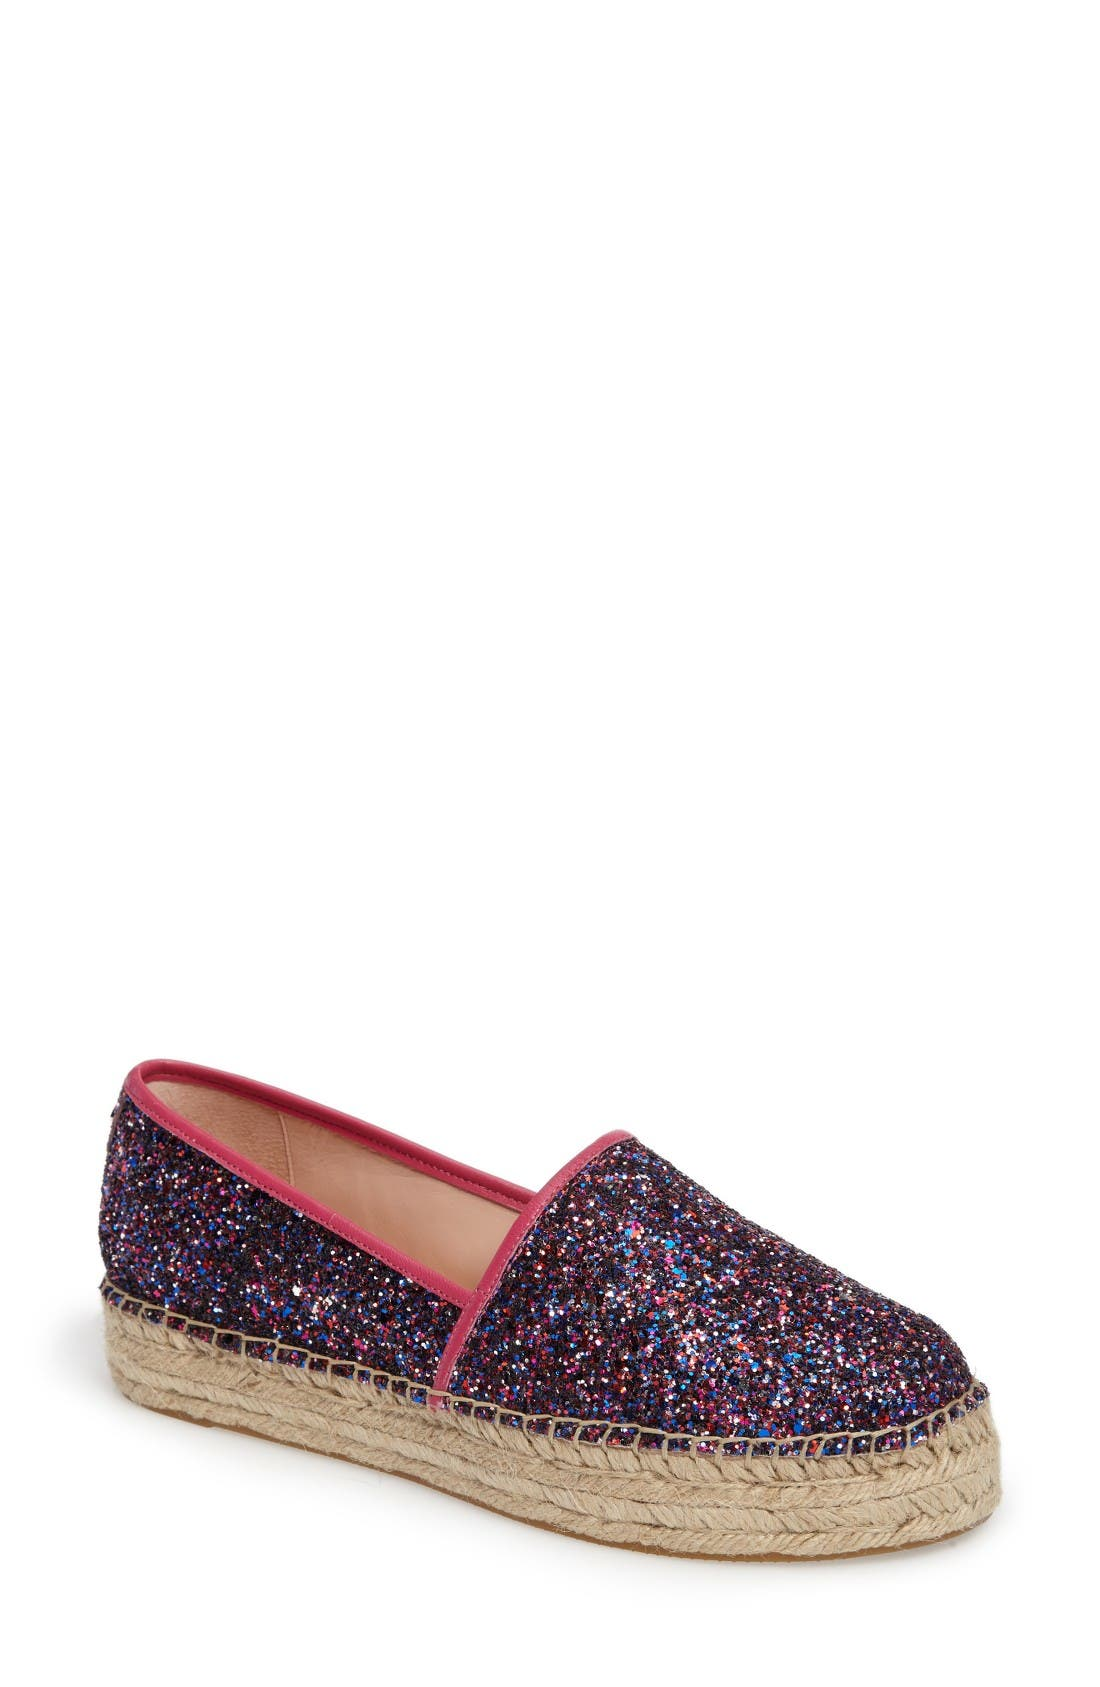 KATE SPADE NEW YORK 'linds' bow espadrille